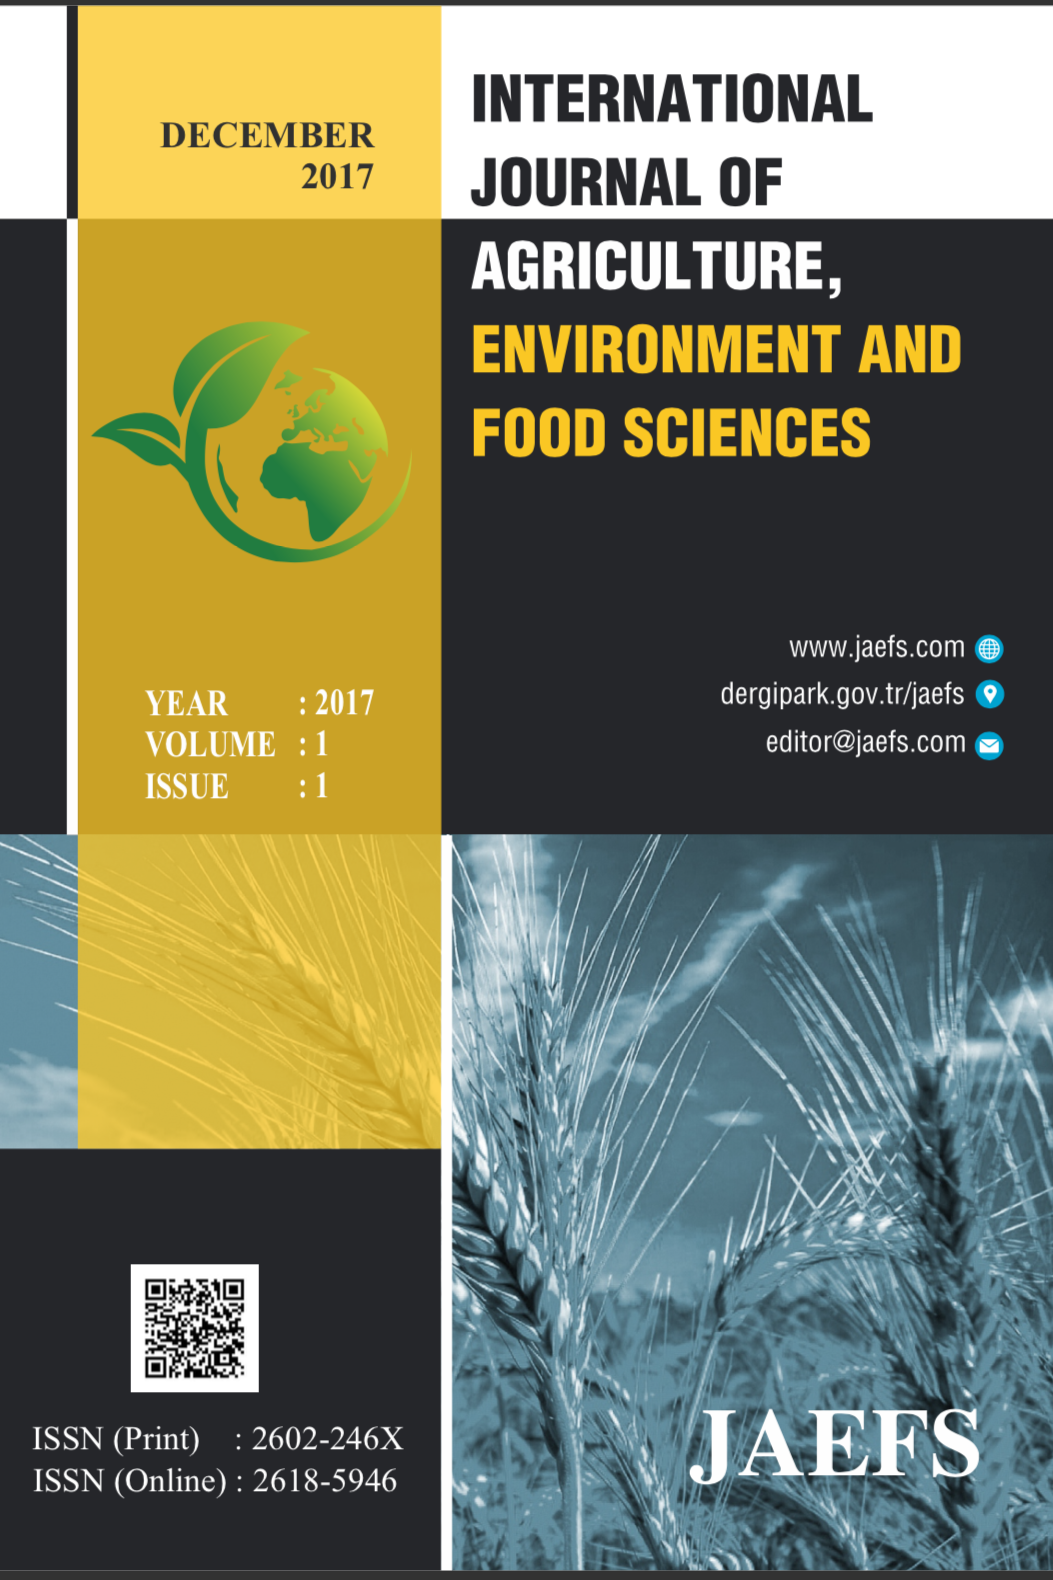 International Journal of Agriculture, Environment and Food Sciences